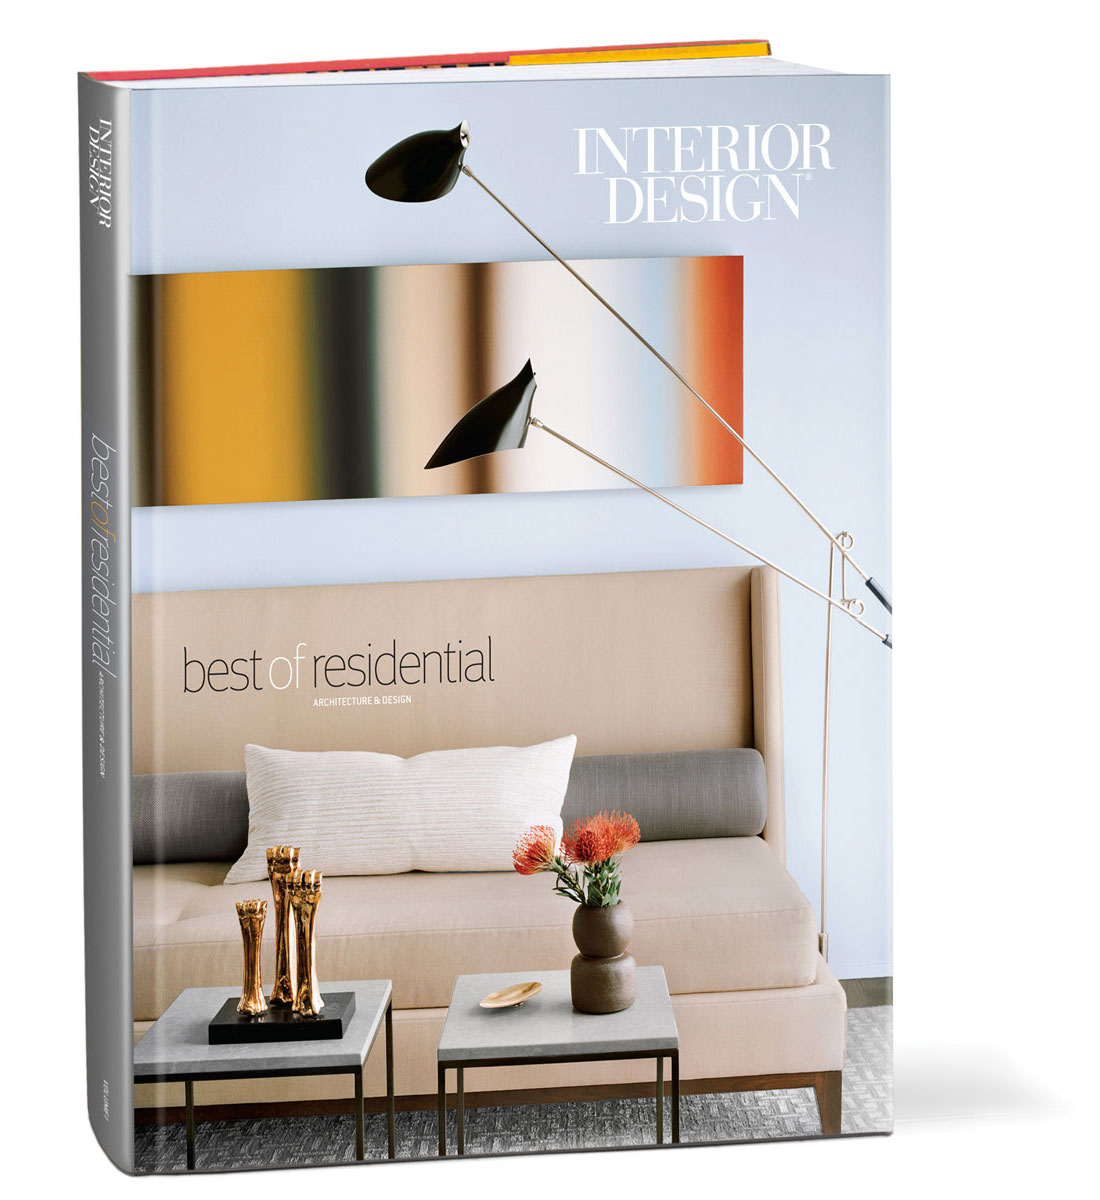 The best of residential design june 2013 9 x 12 300 pages